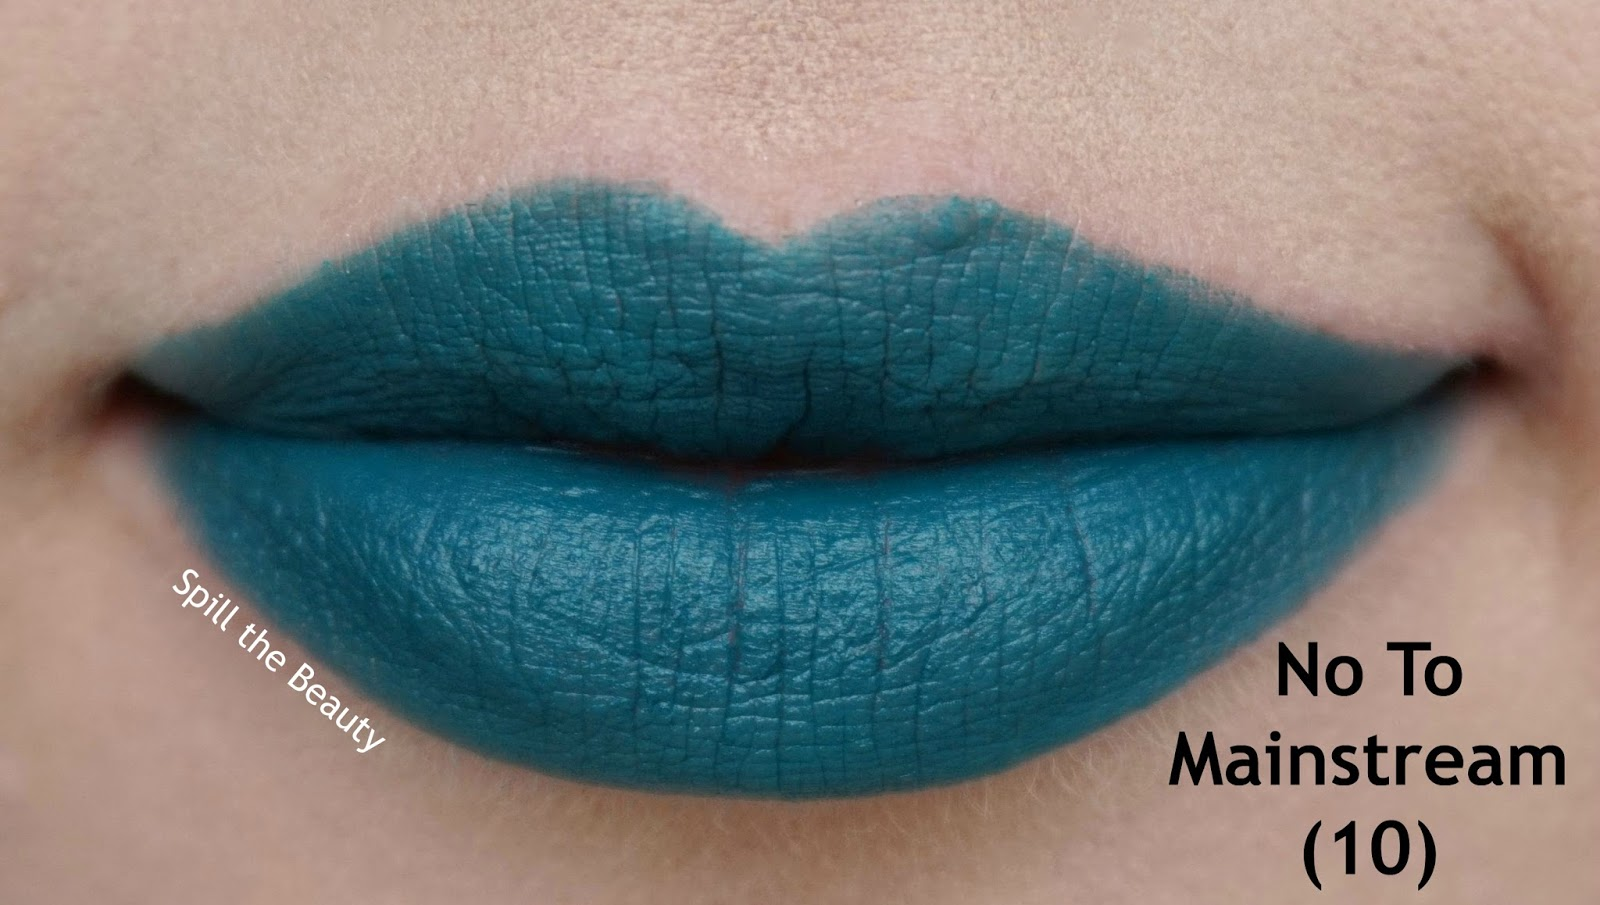 essence matt matt matt vibrant shock lipstick review swatches 10 no to mainstream - lips